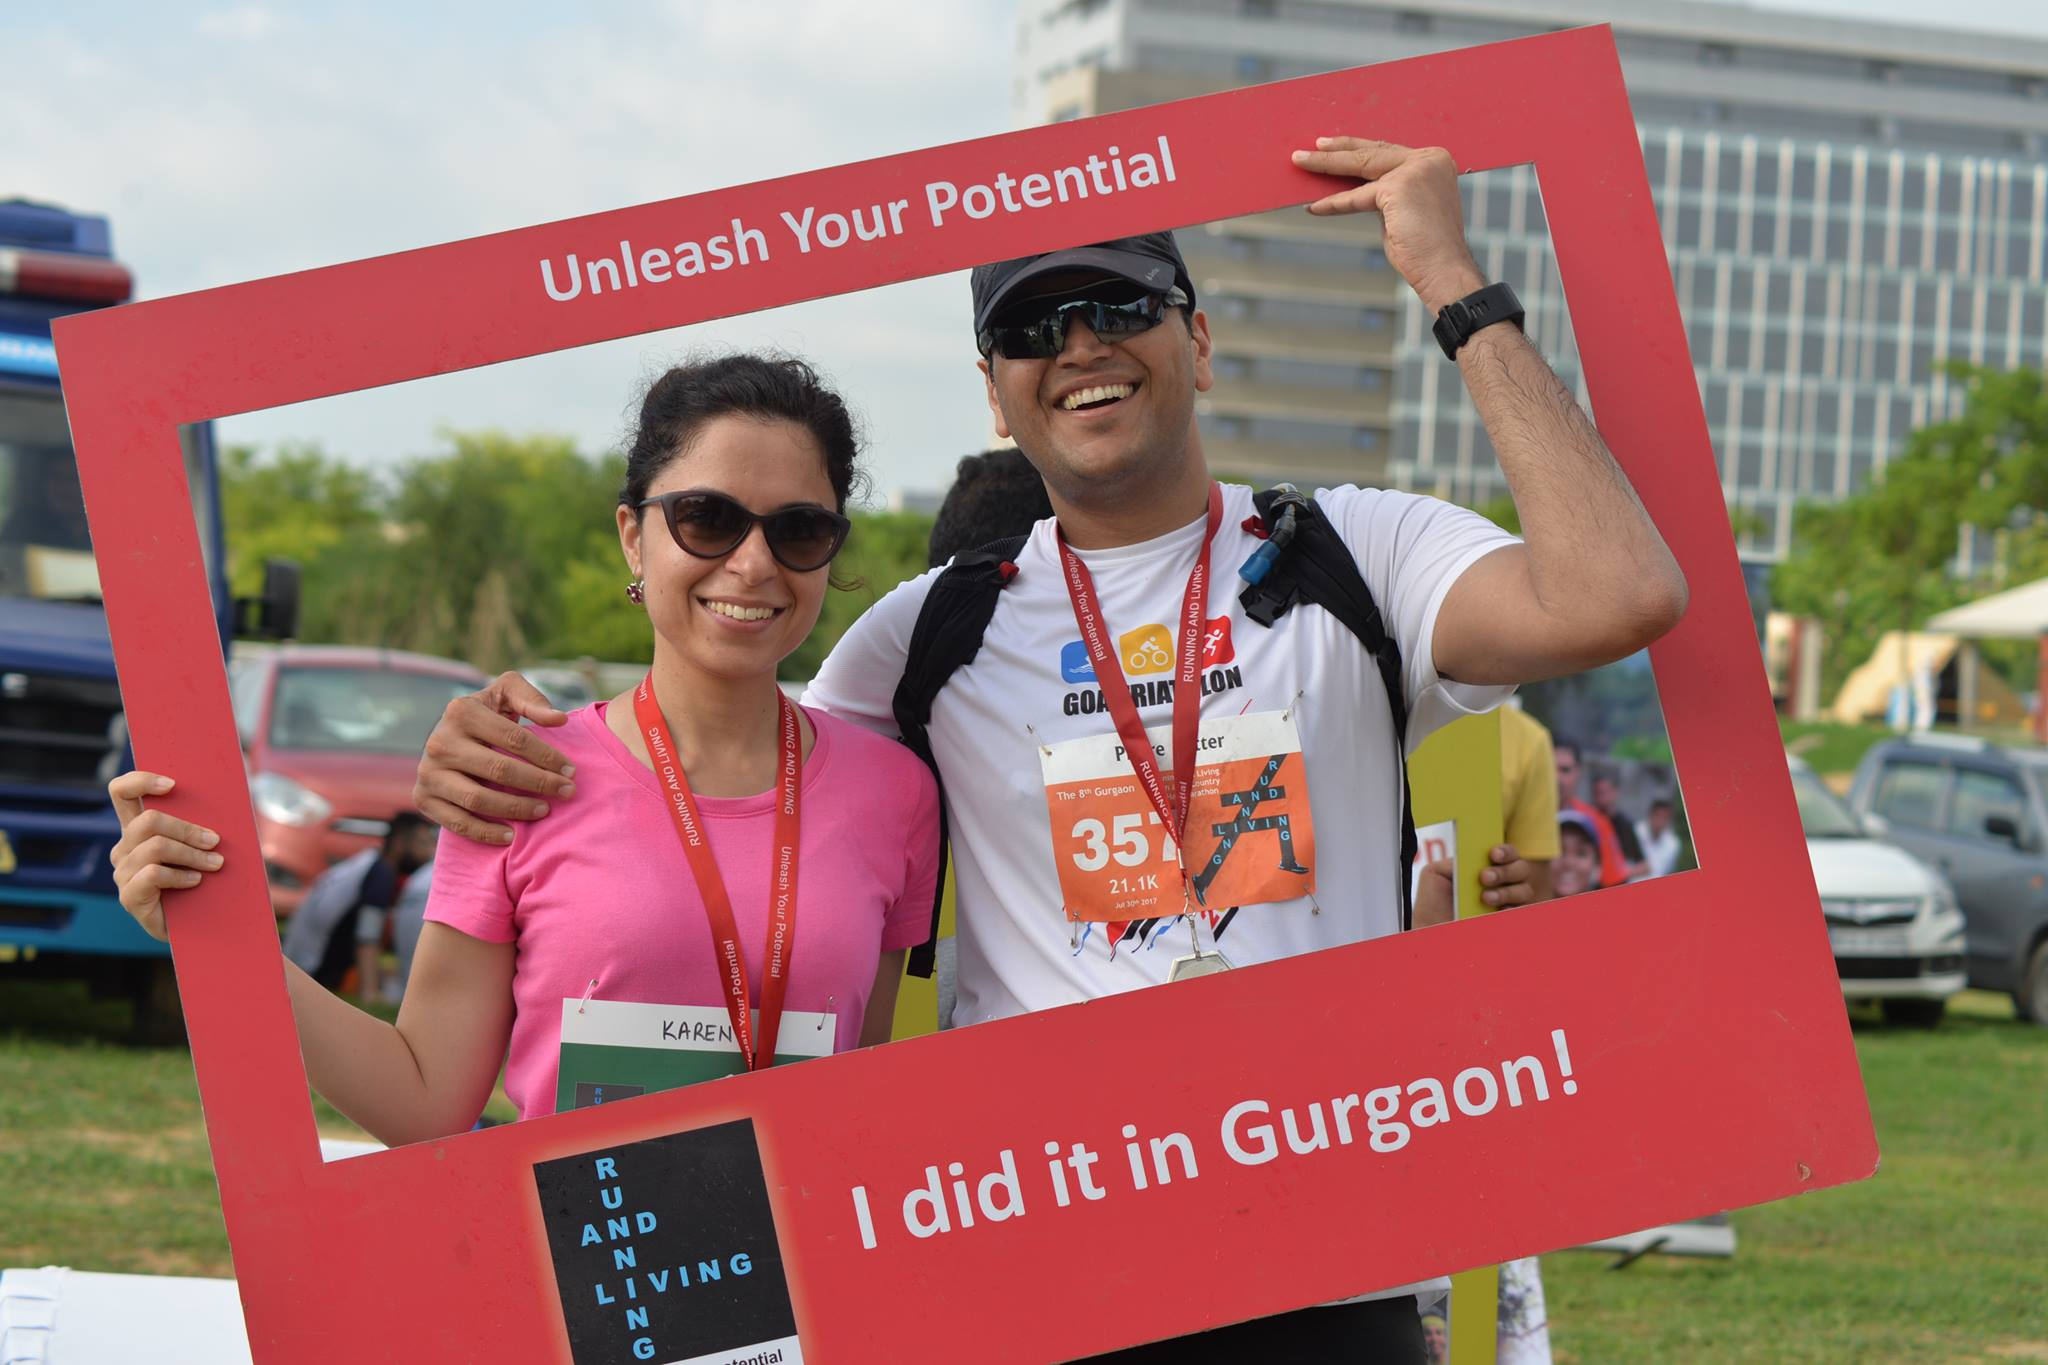 3rd Bangalore Running And Living 10K Treadmill Test